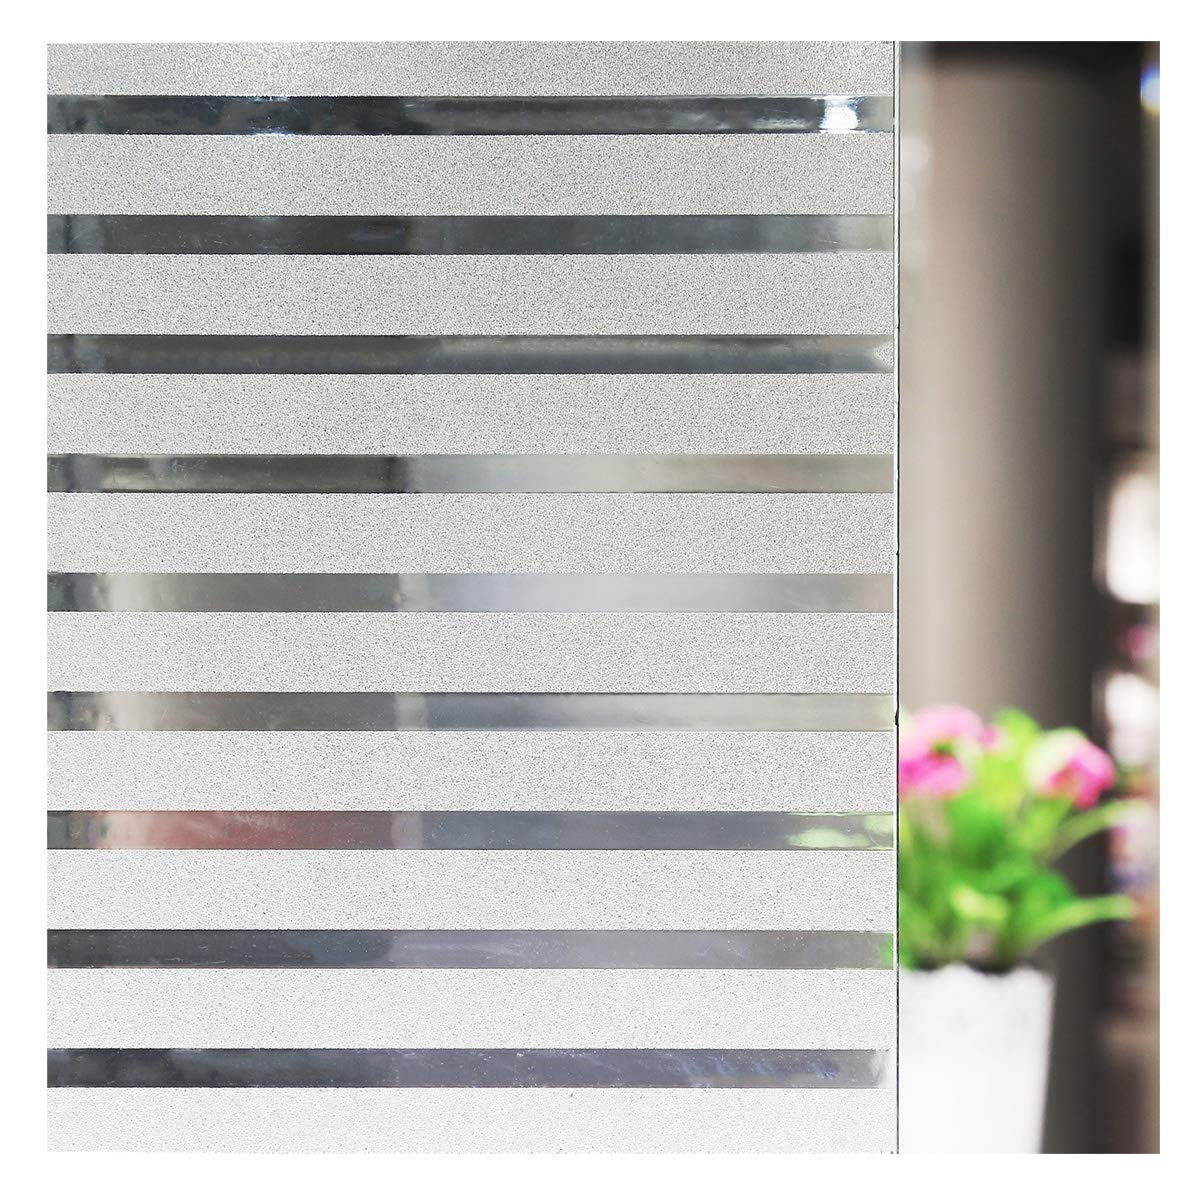 ConCus-T Static Cling Vinyl Premium Frosted Wide Stripes Decorative Privacy Window Film for Home Office Privacy and Decoration 23.62x118.11 60cm x 300cm